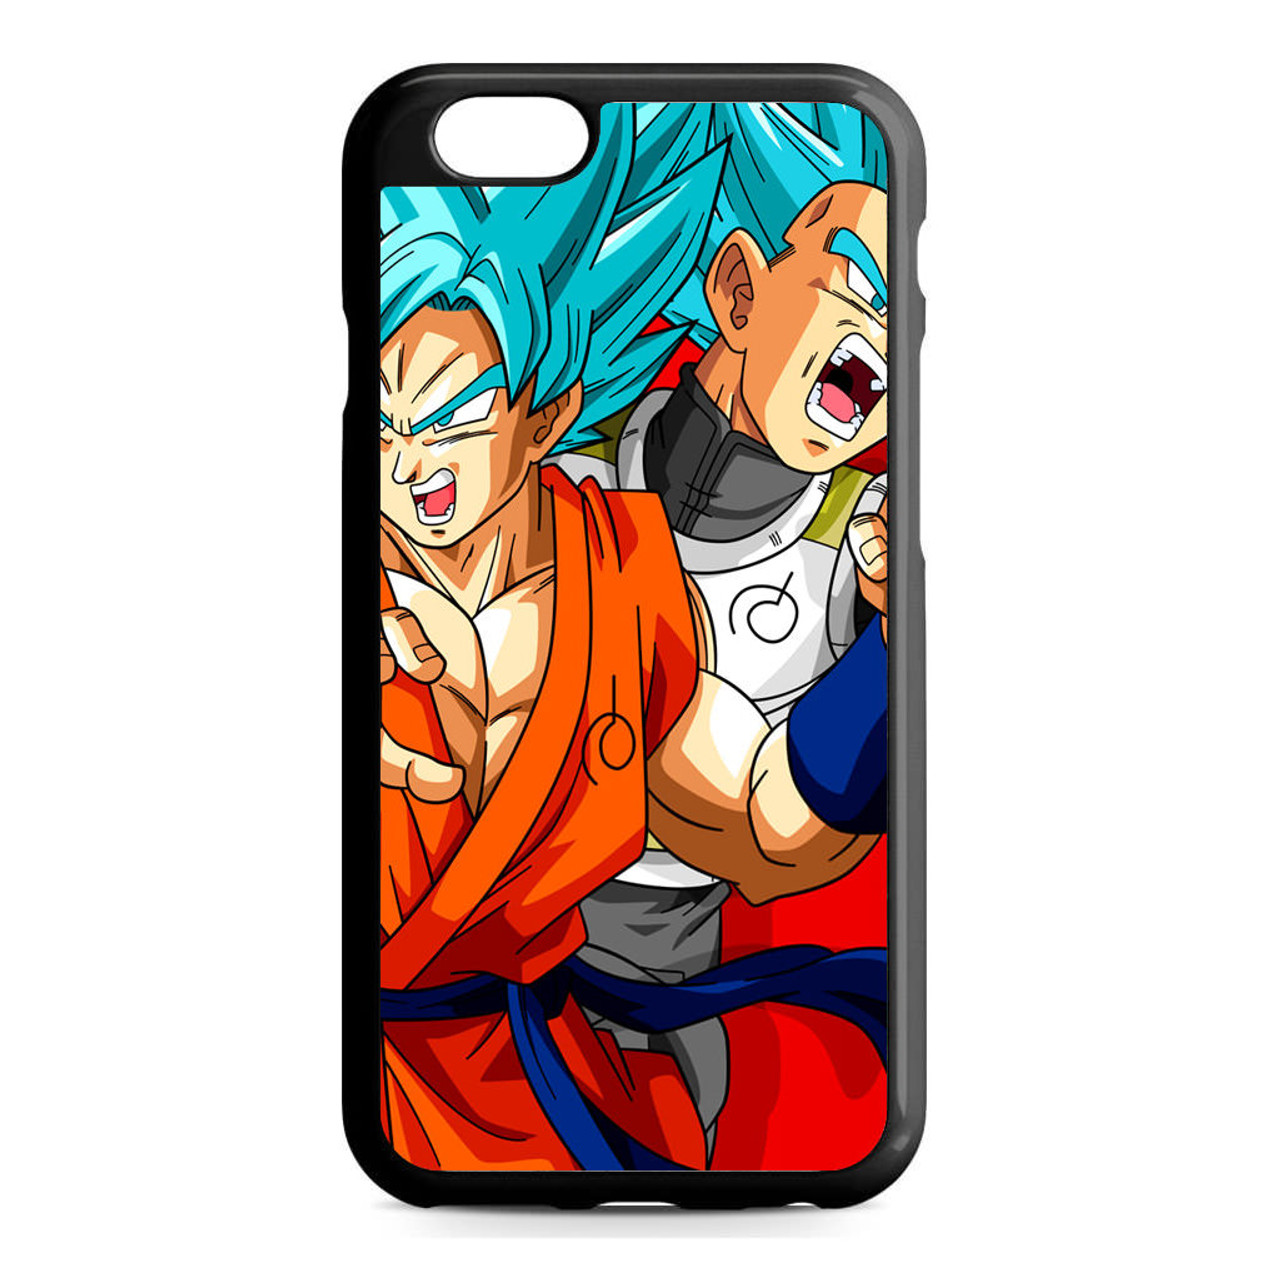 outlet store 9493a 70dca Dragon Ball Super Ssgs Goku And Vegeta1 iPhone 6/6S Case